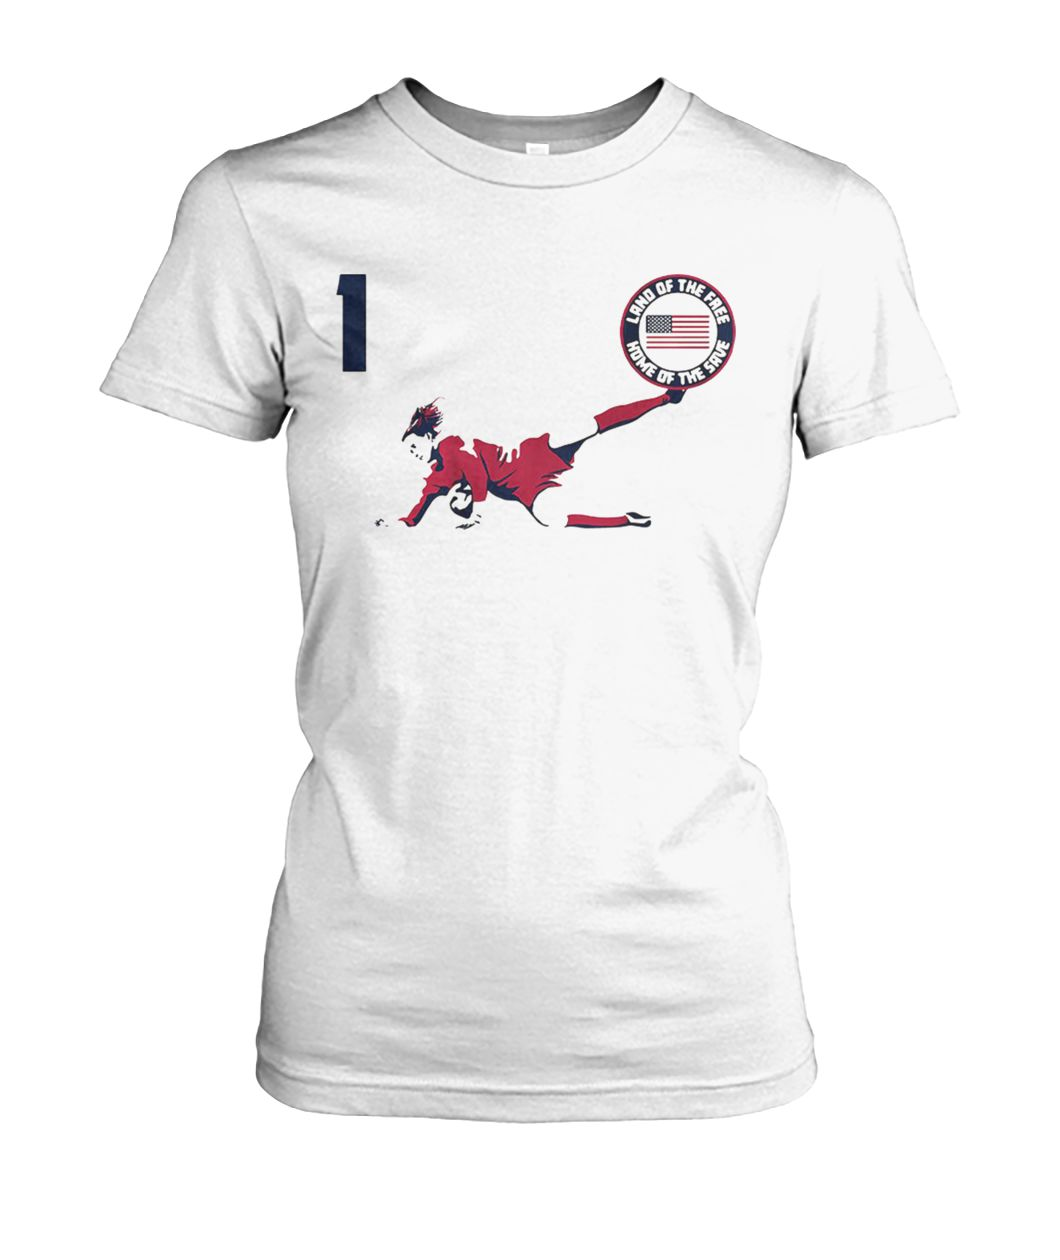 Alyssa Naeher land of the free home of the save women's crew tee